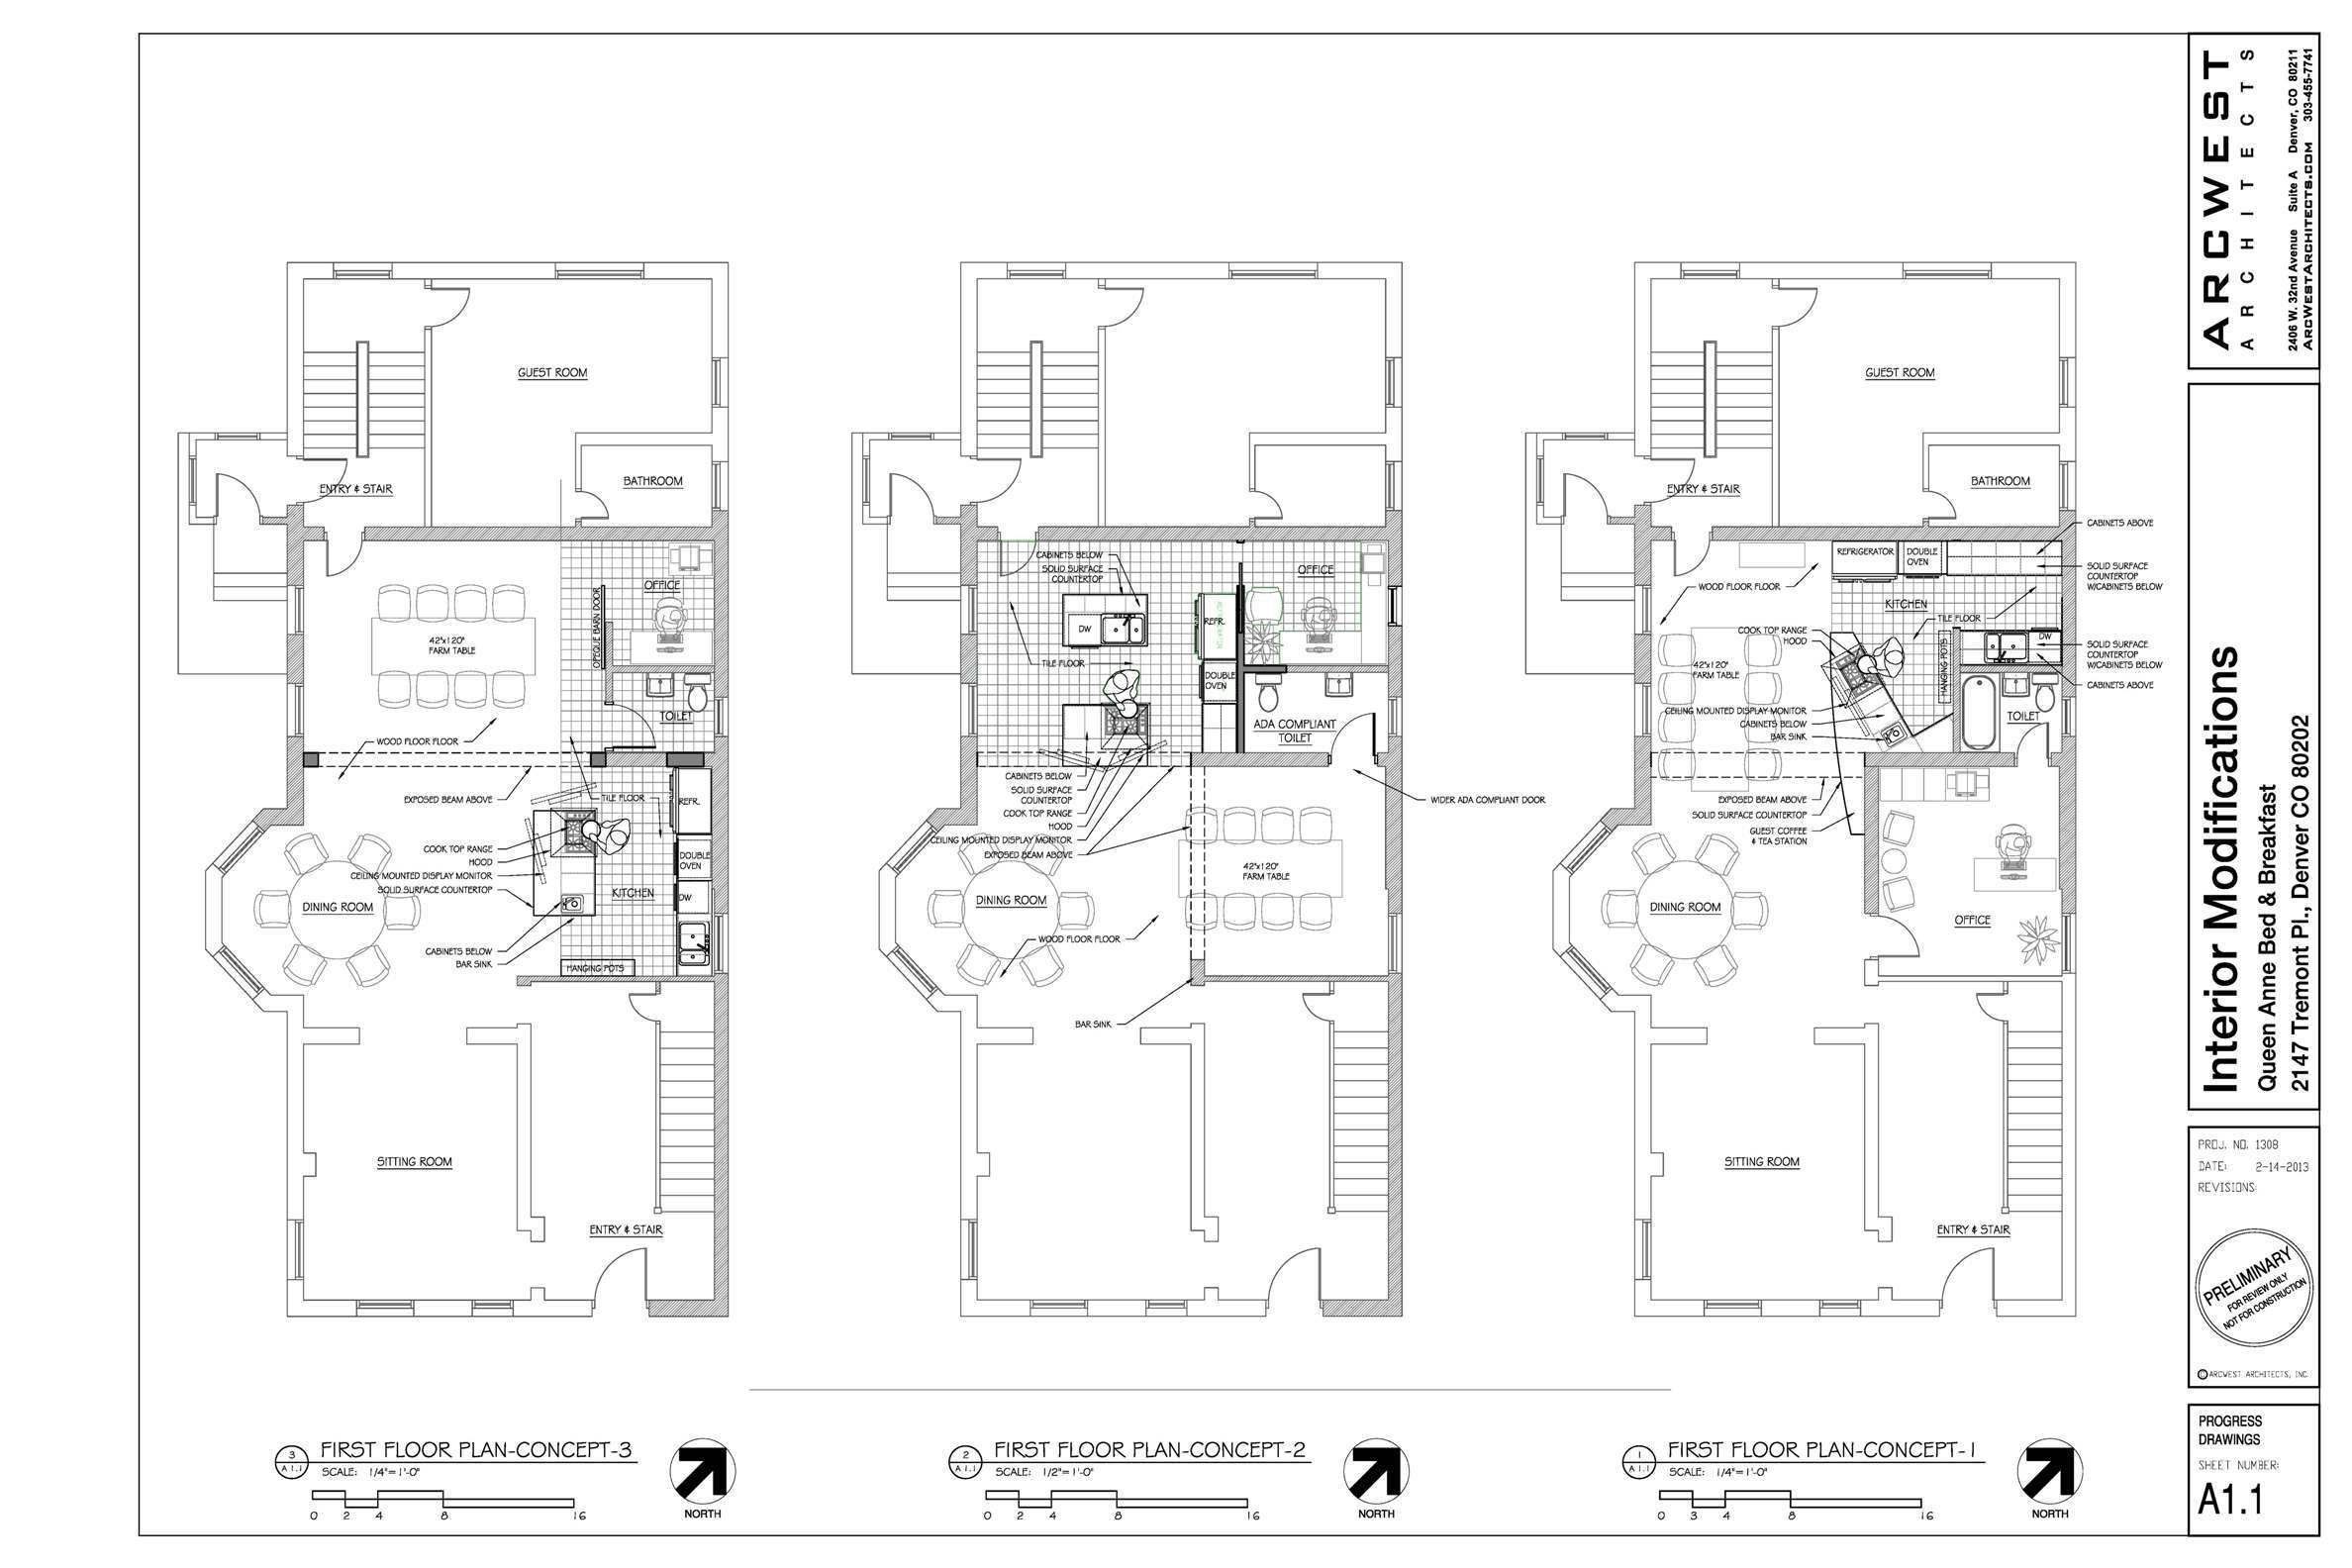 kitchen templates for floor plans cool petite kitchen floor plan online house plan designer floor plans room layout design design layout designing online kitchen layout software with kitchen templates for floor plans